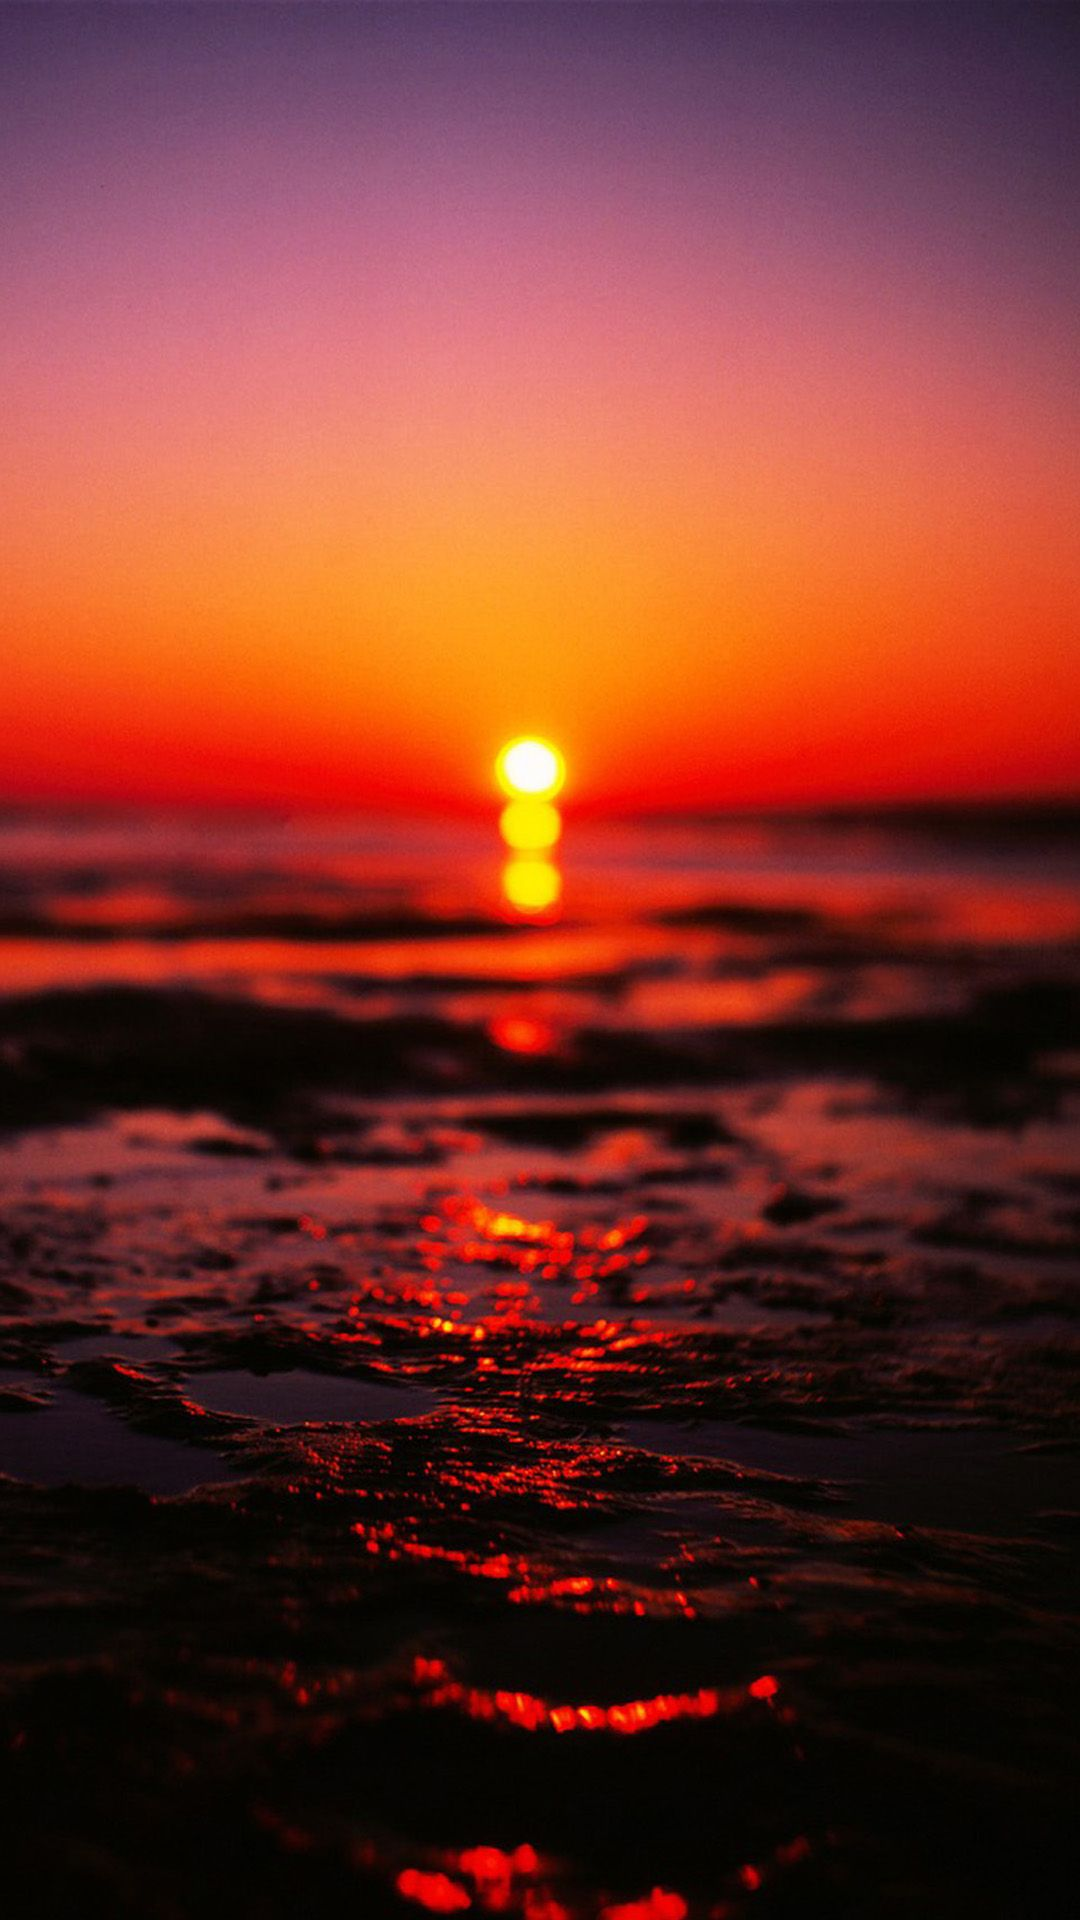 Beauty of Nature Sunset iphone wallpaper, Beautiful